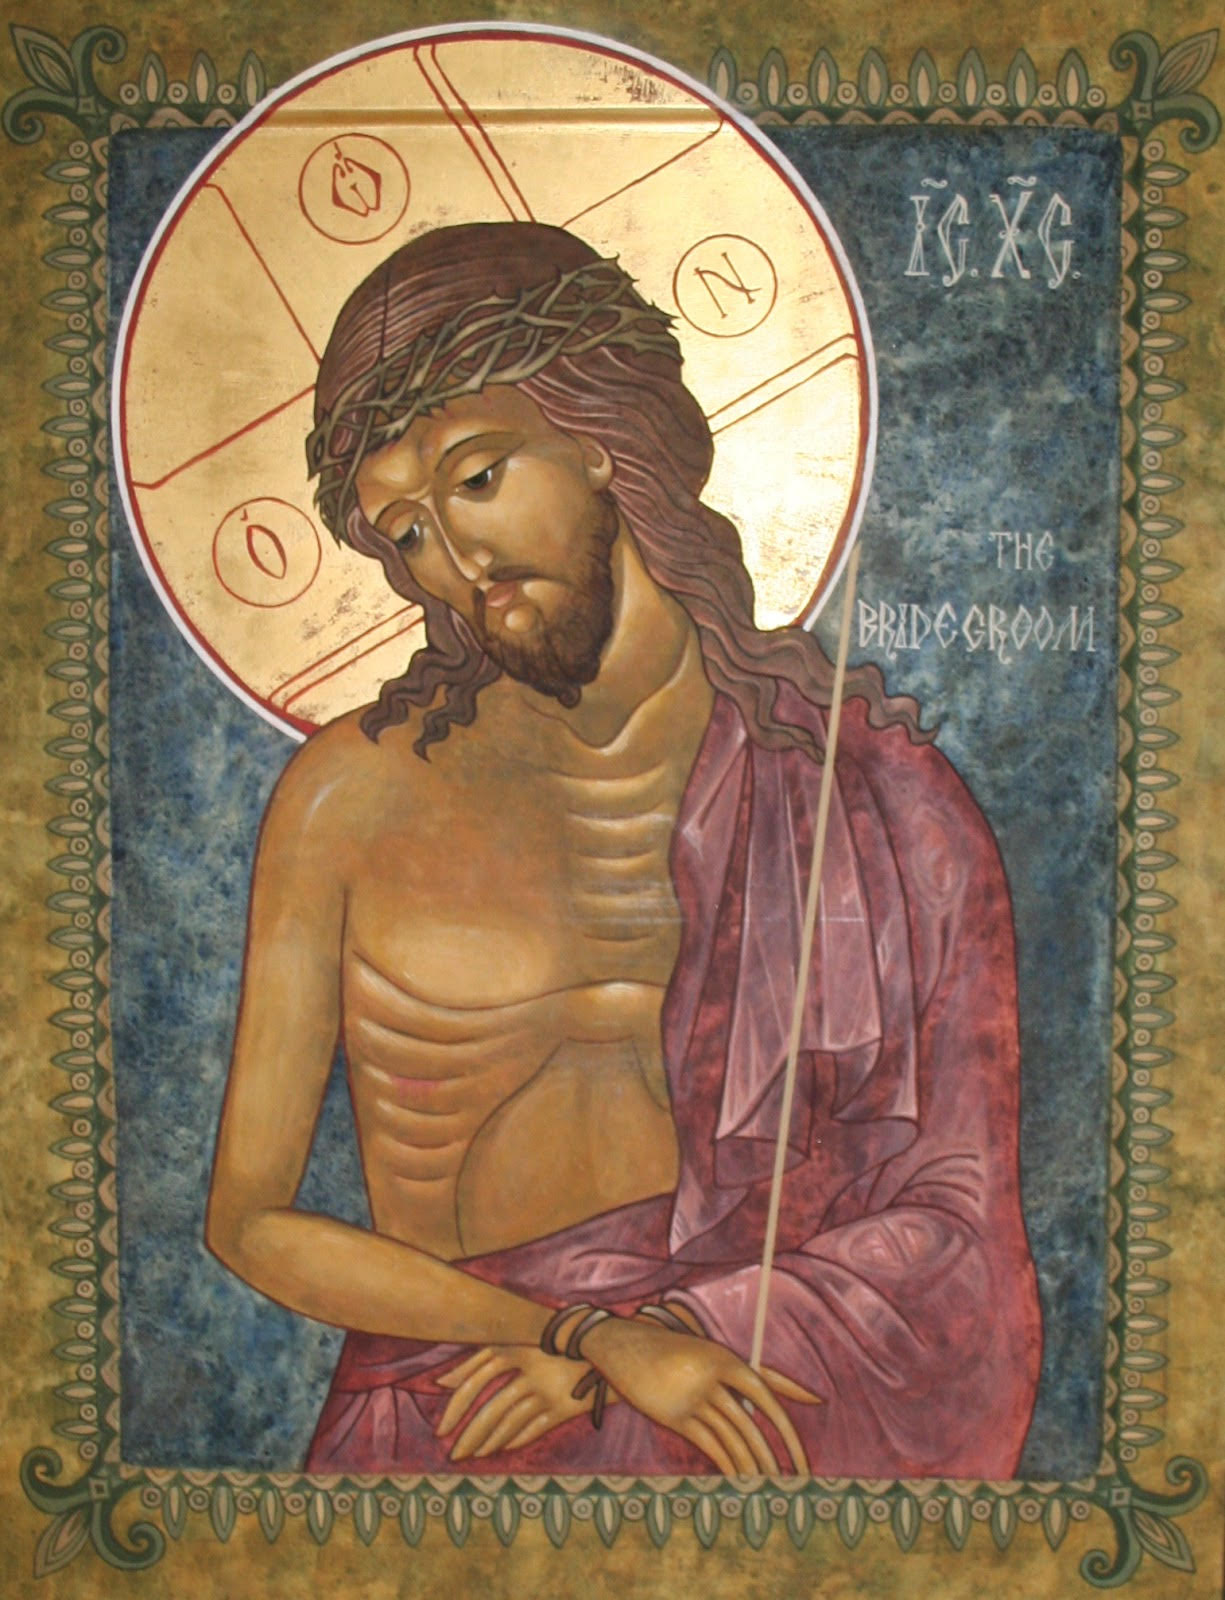 The icon of Christ the Bridegroom, used during Holy Week, visually depicts the imagery of Christ as King during his mockery.